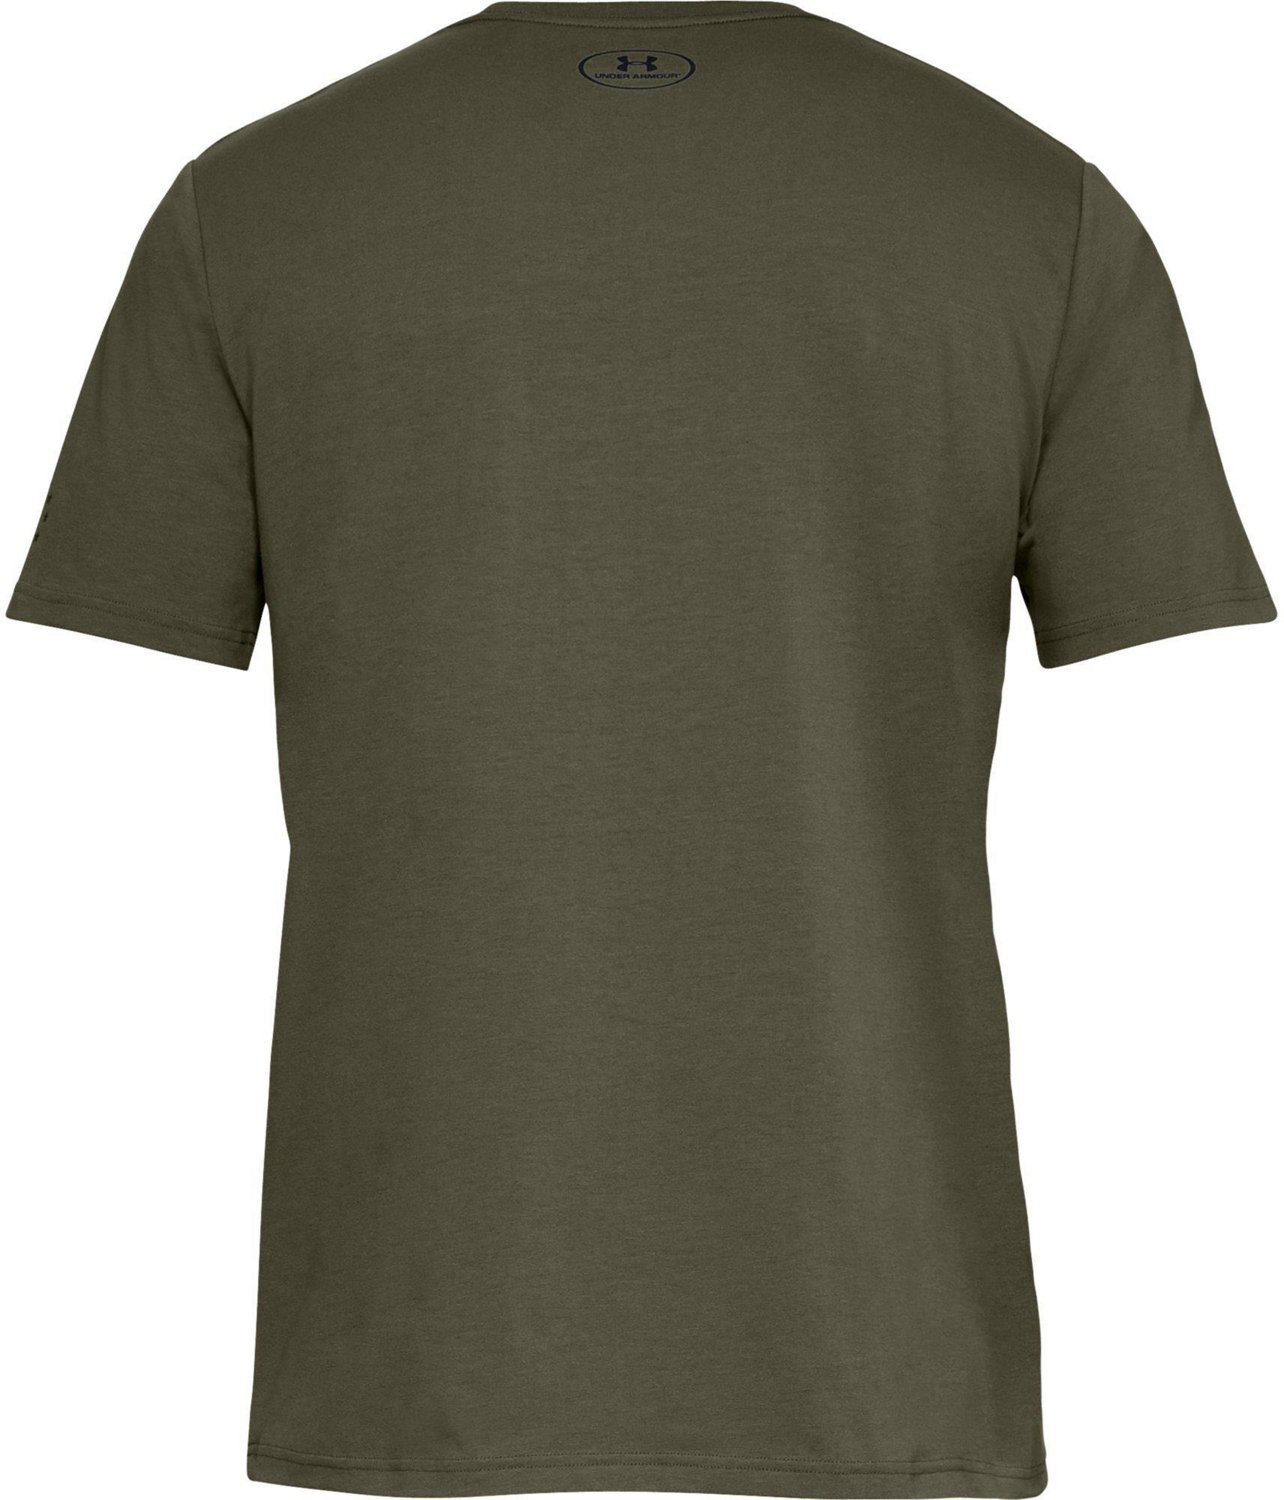 Under Armour Men's Freedom US Eagle T-shirt - view number 2